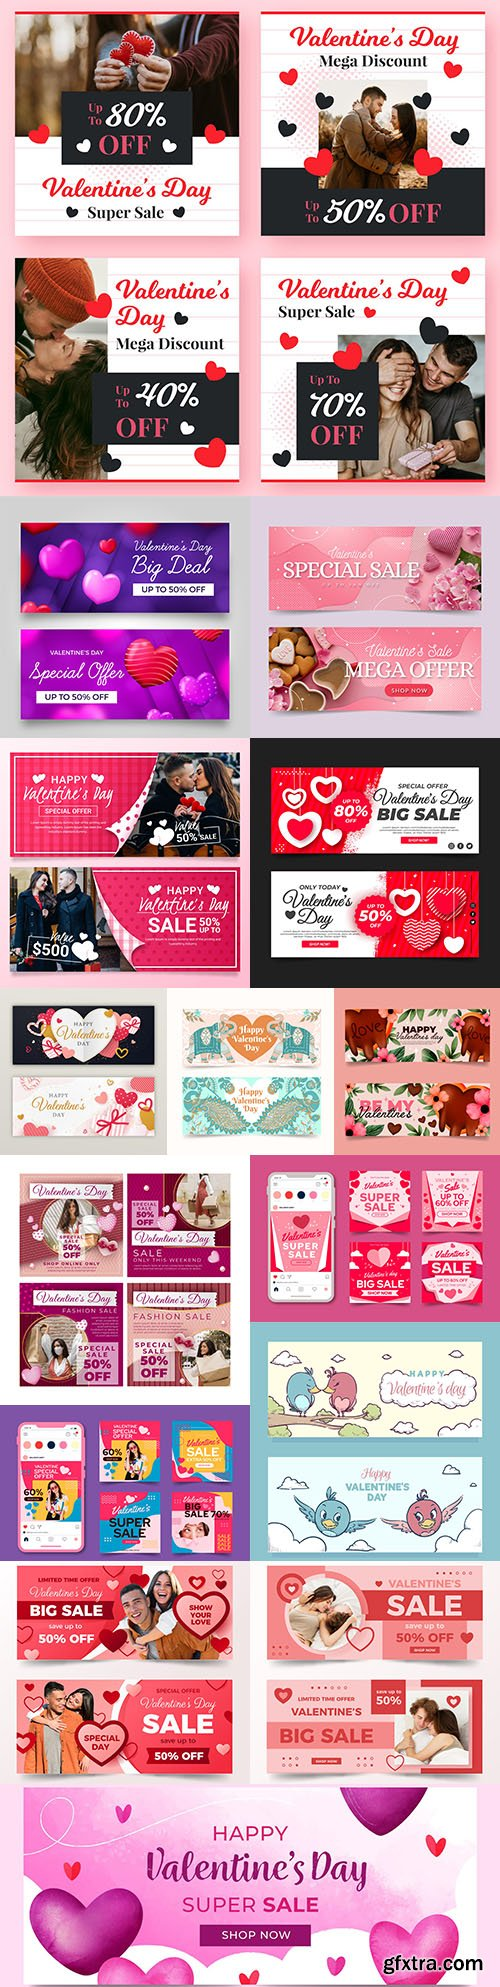 Valentine's Day banner and holiday sales design template